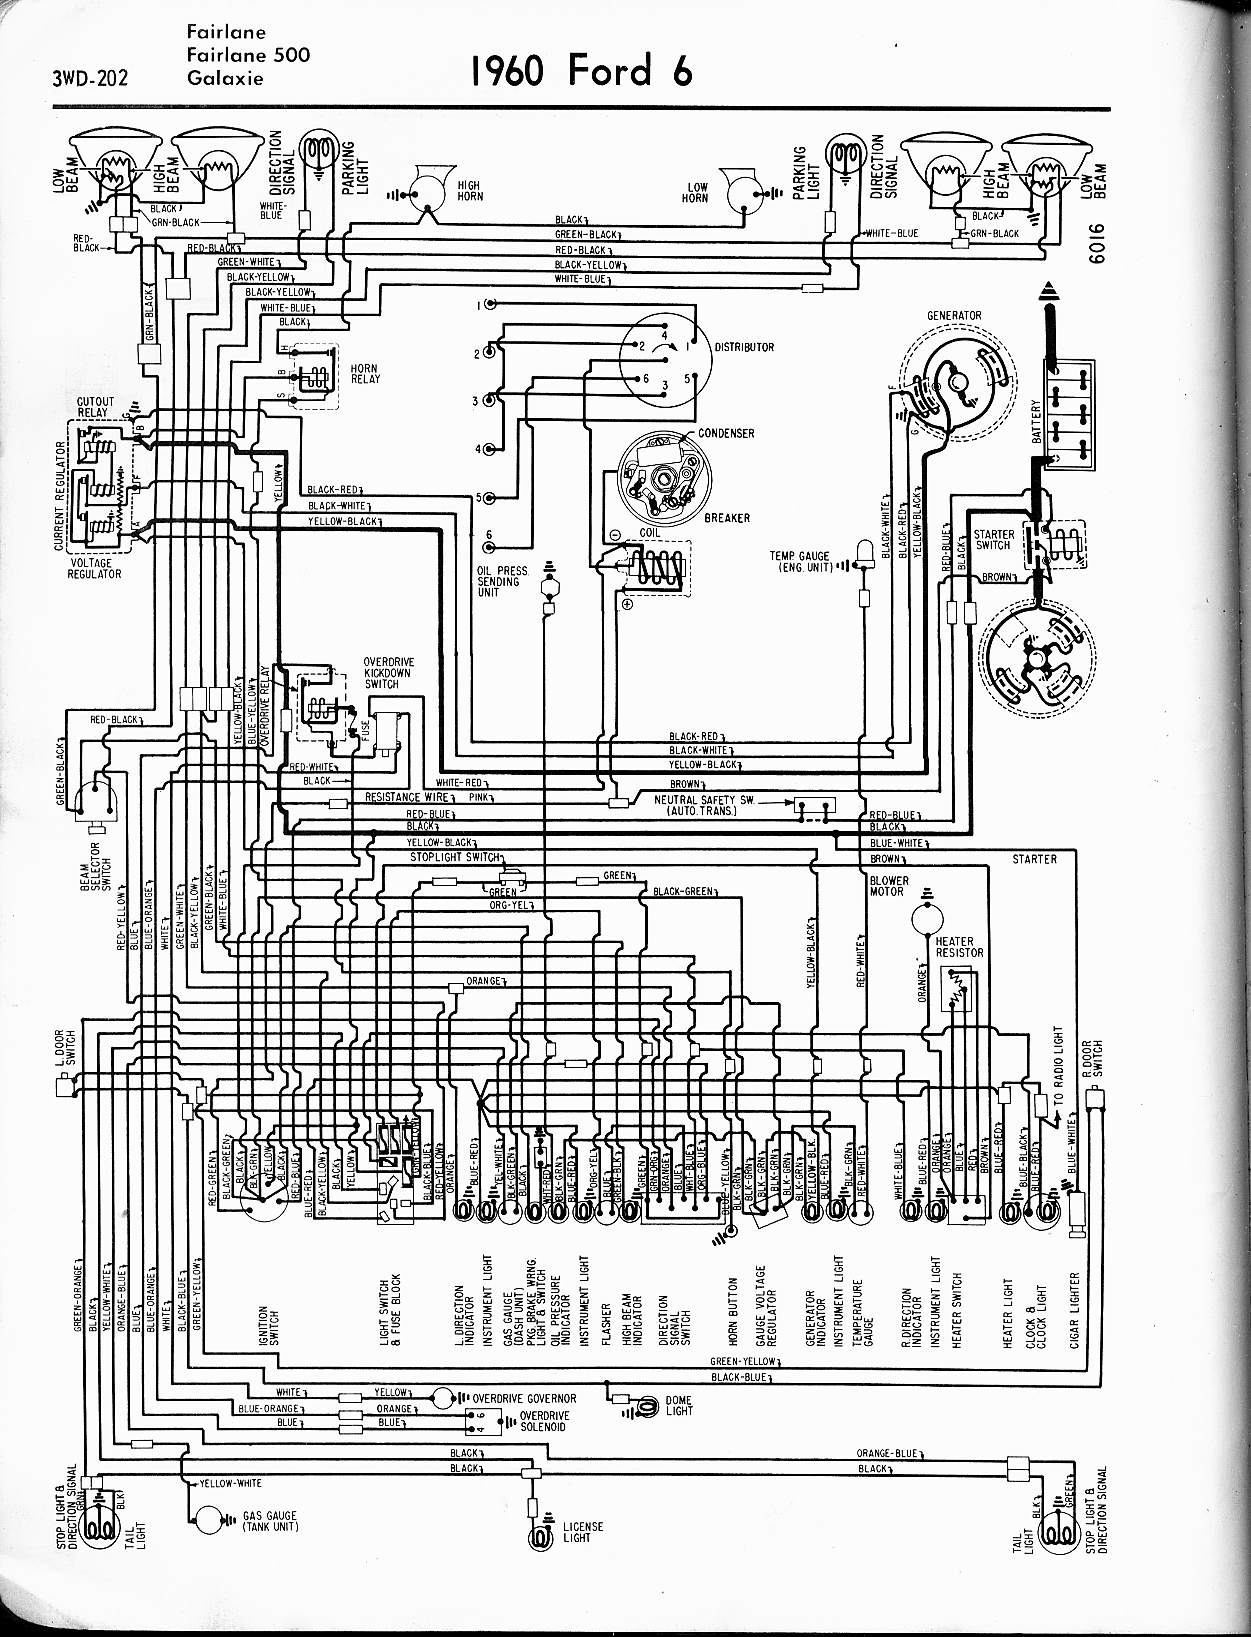 57 65 Ford Wiring Diagrams Basic Electrical Get Free Image About Diagram 1960 6 Cyl Fairlane 500 Galaxie